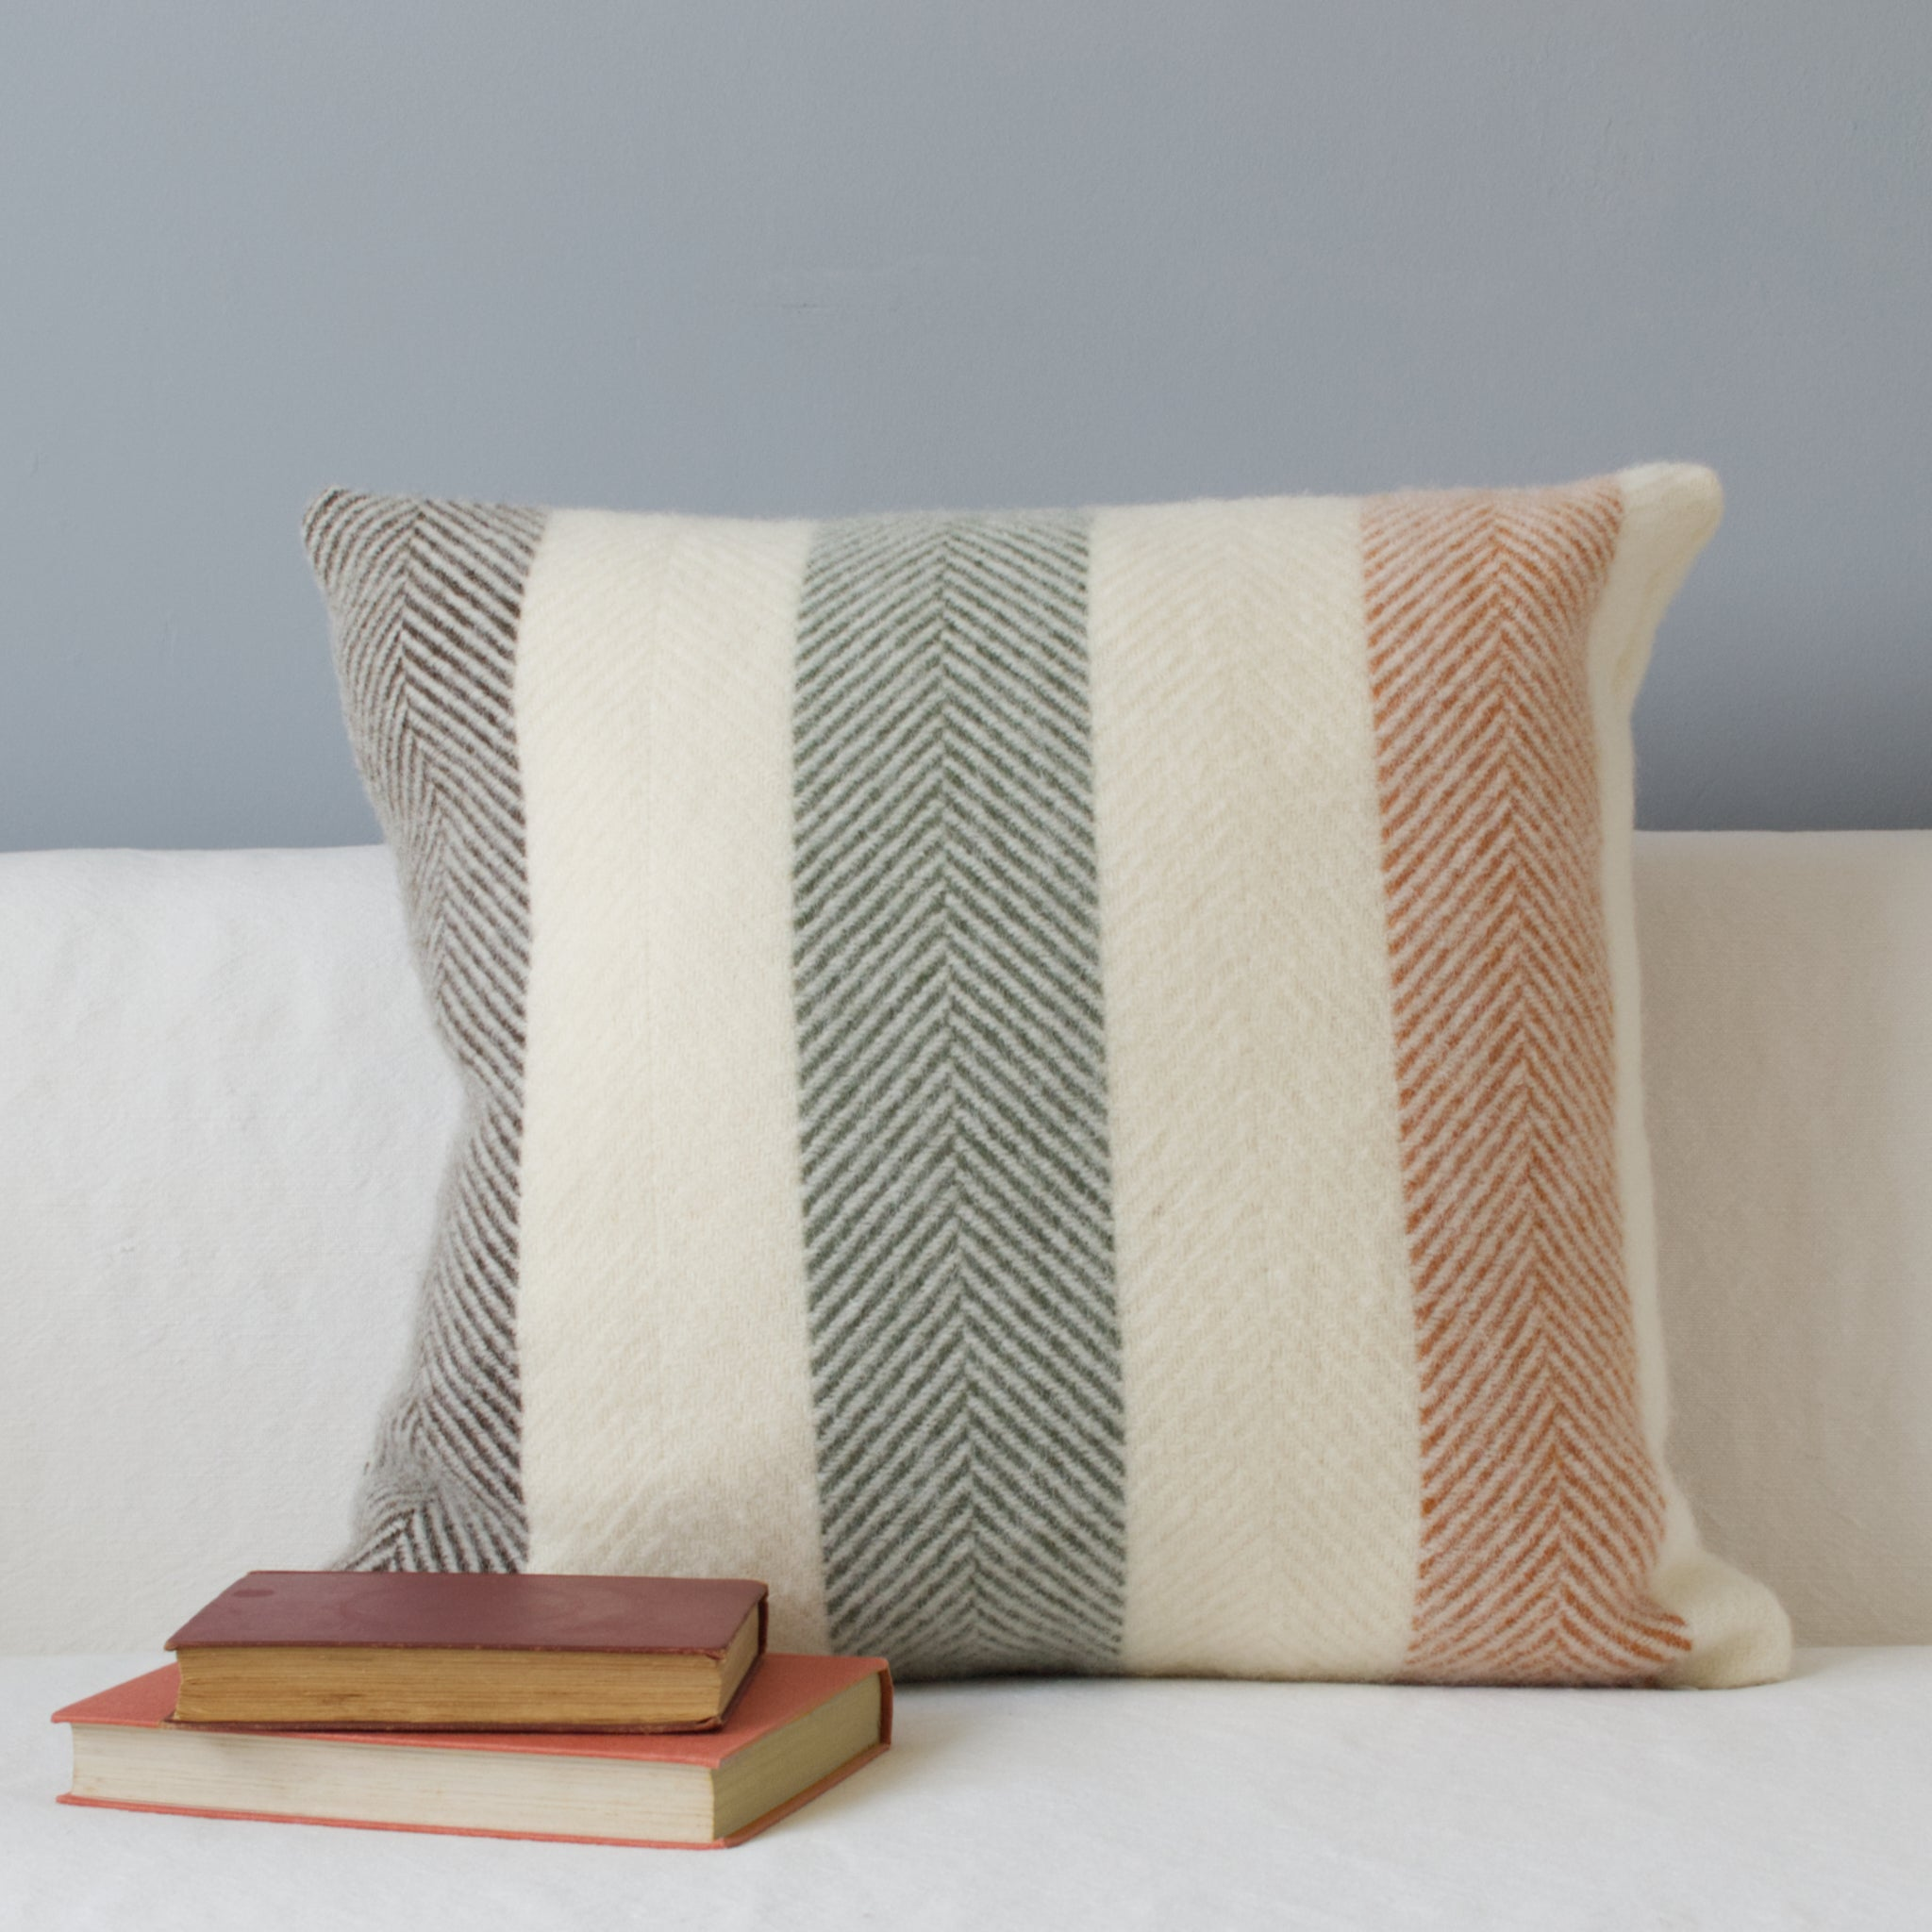 Wool cushion with stripes